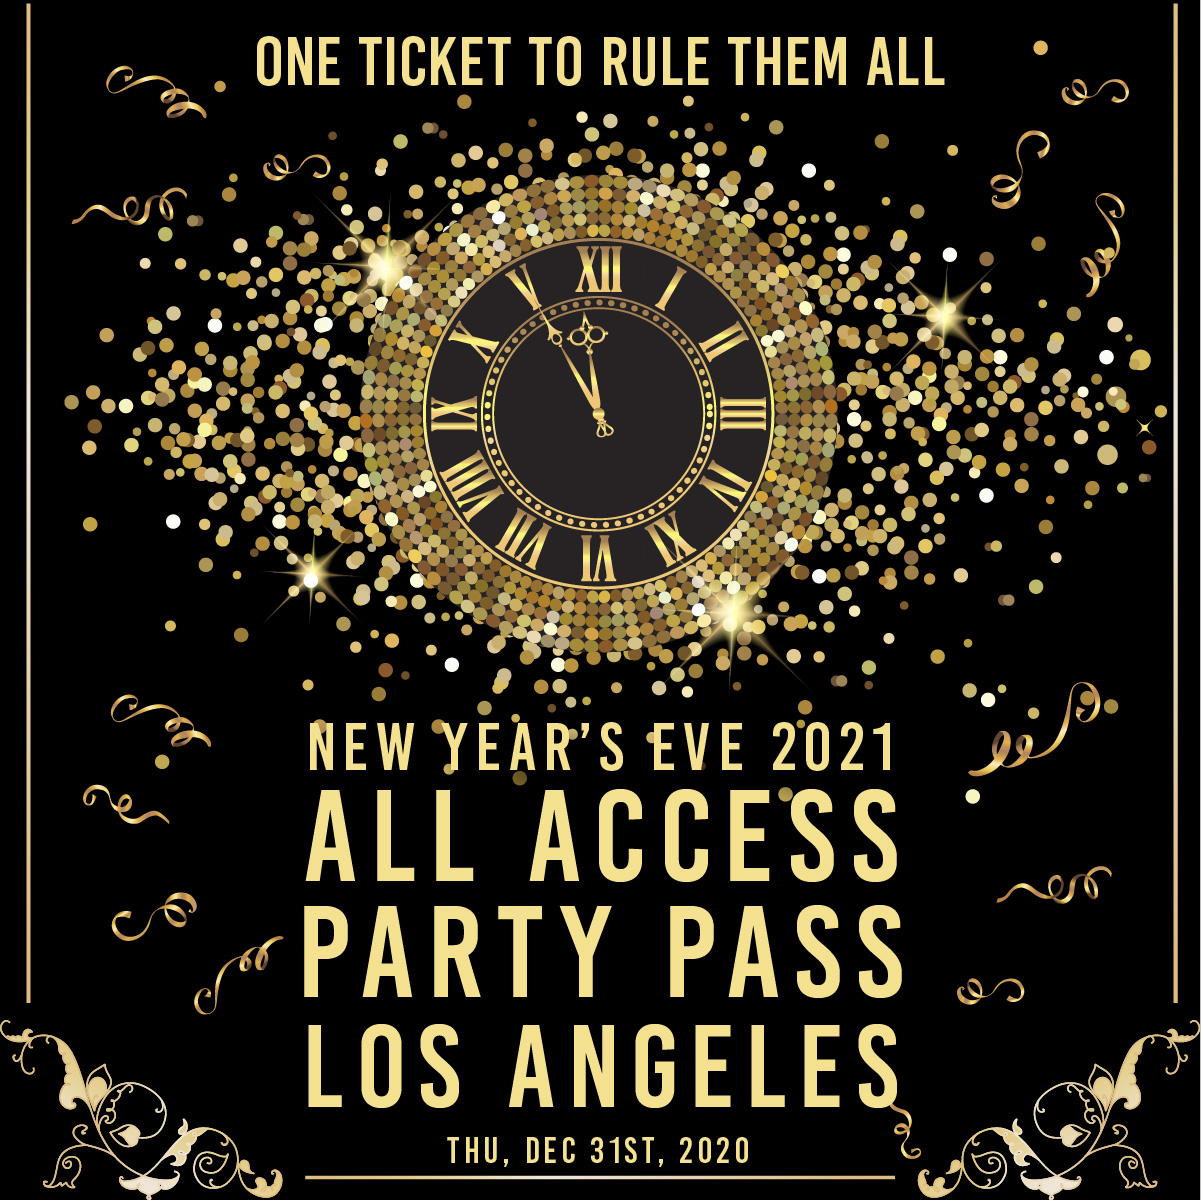 All Access Party Pass | Los Angeles New Years Eve Parties | Buy Tickets Now